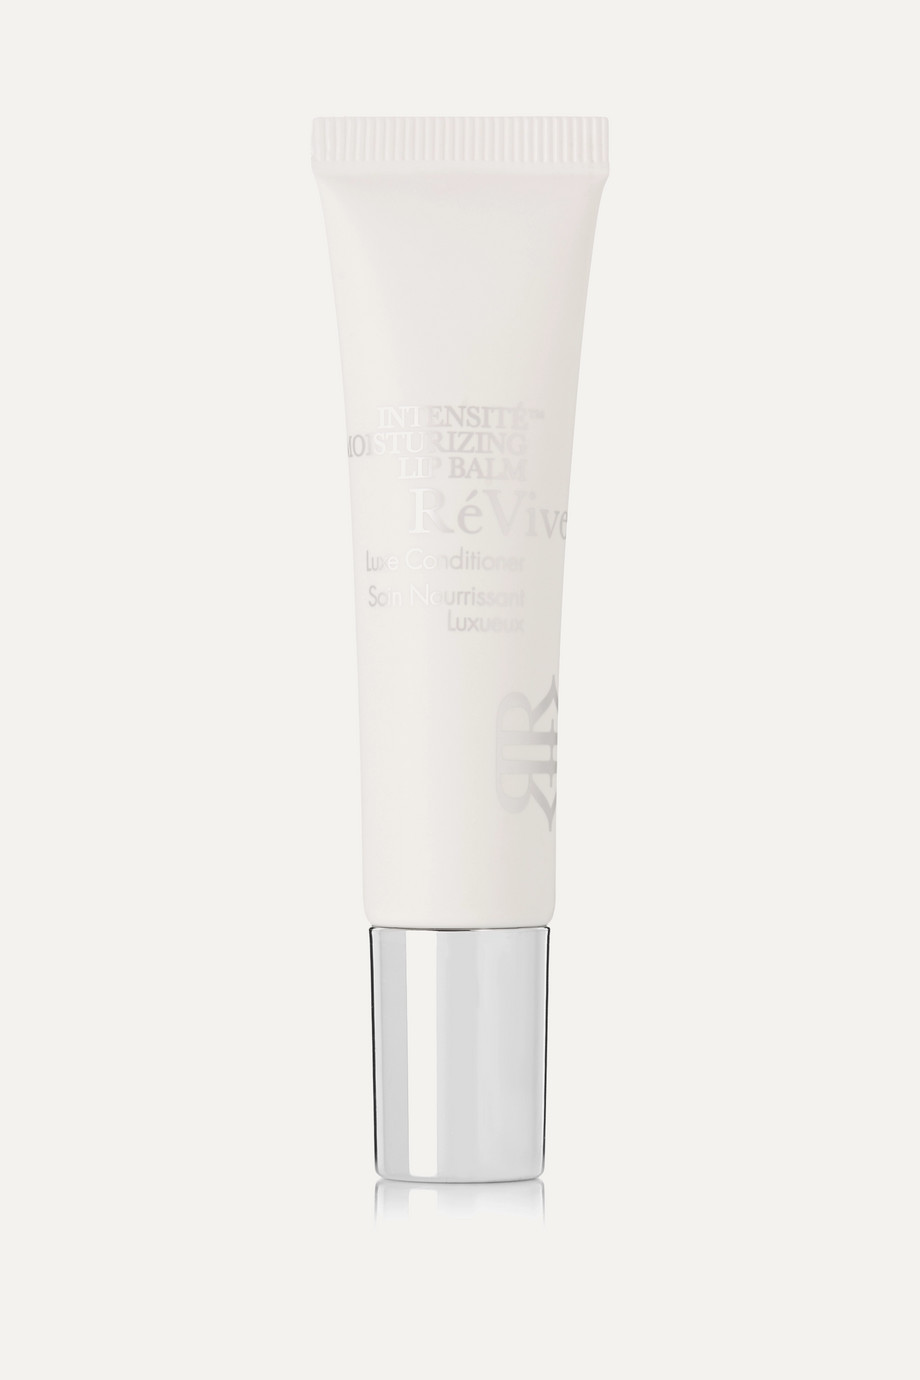 RéVive Intensité Moisturizing Lip Balm, 10ml